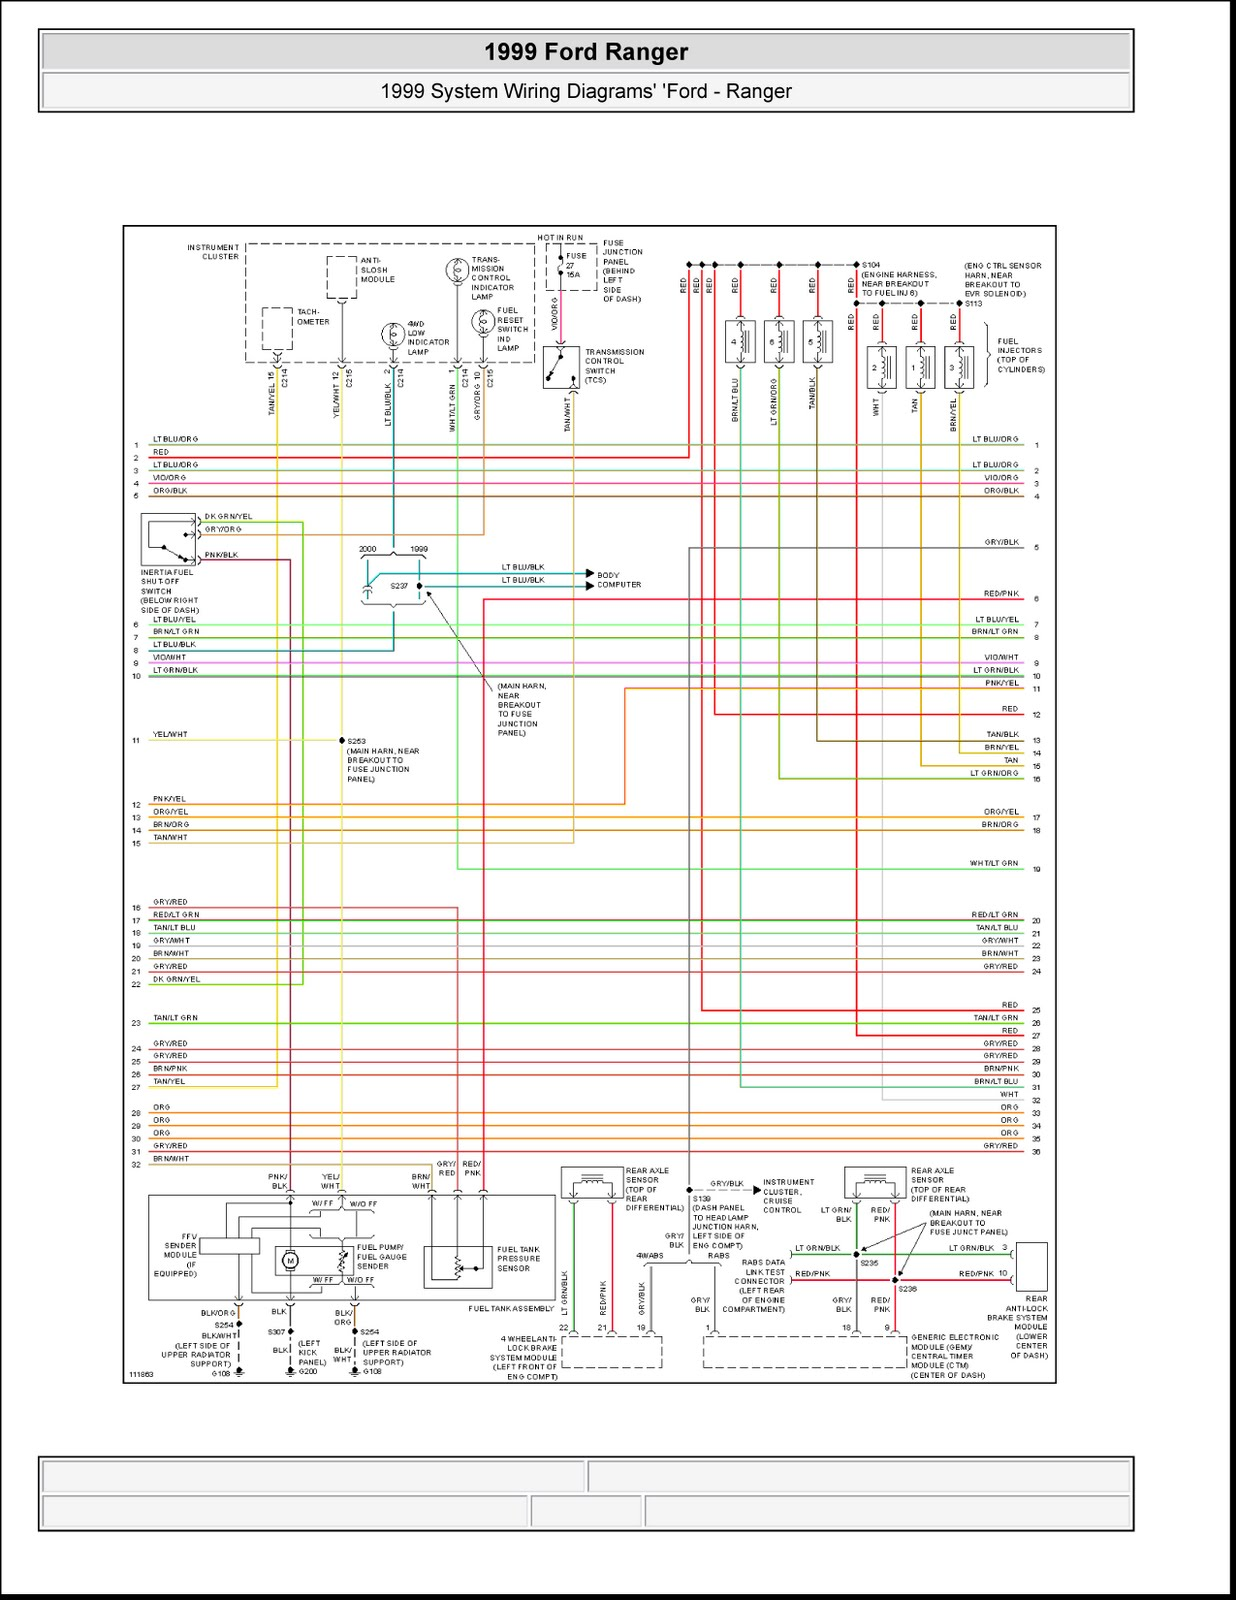 medium resolution of 1999 ford ranger system wiring diagrams